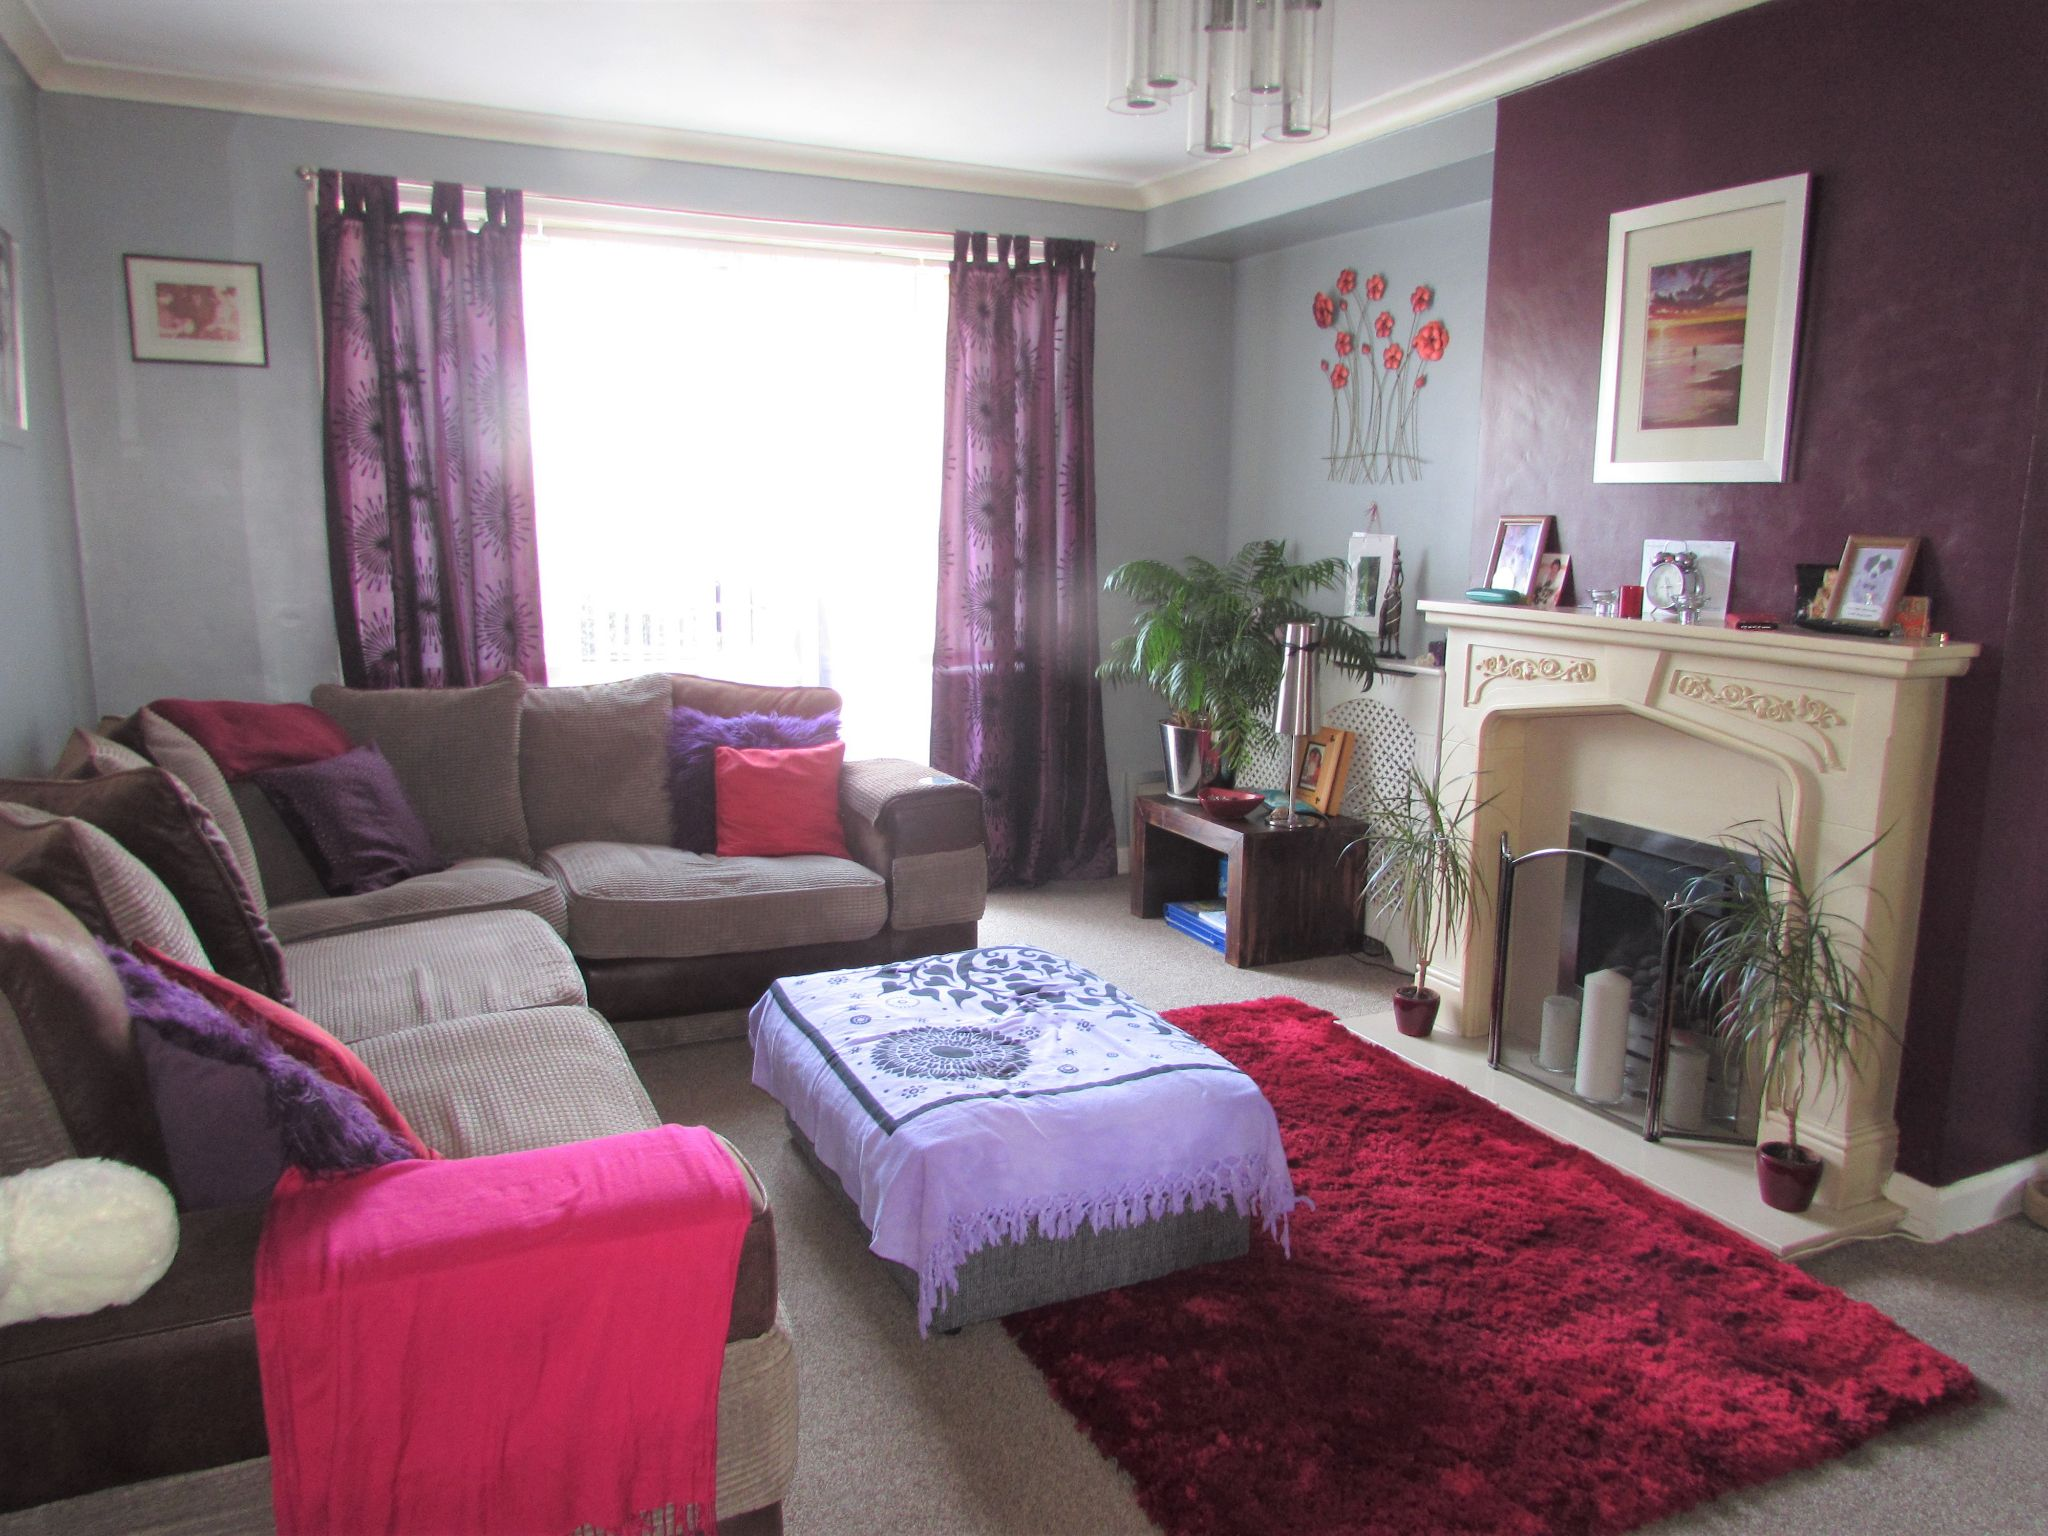 3 Bedroom Semi-detached House For Sale - Photograph 2